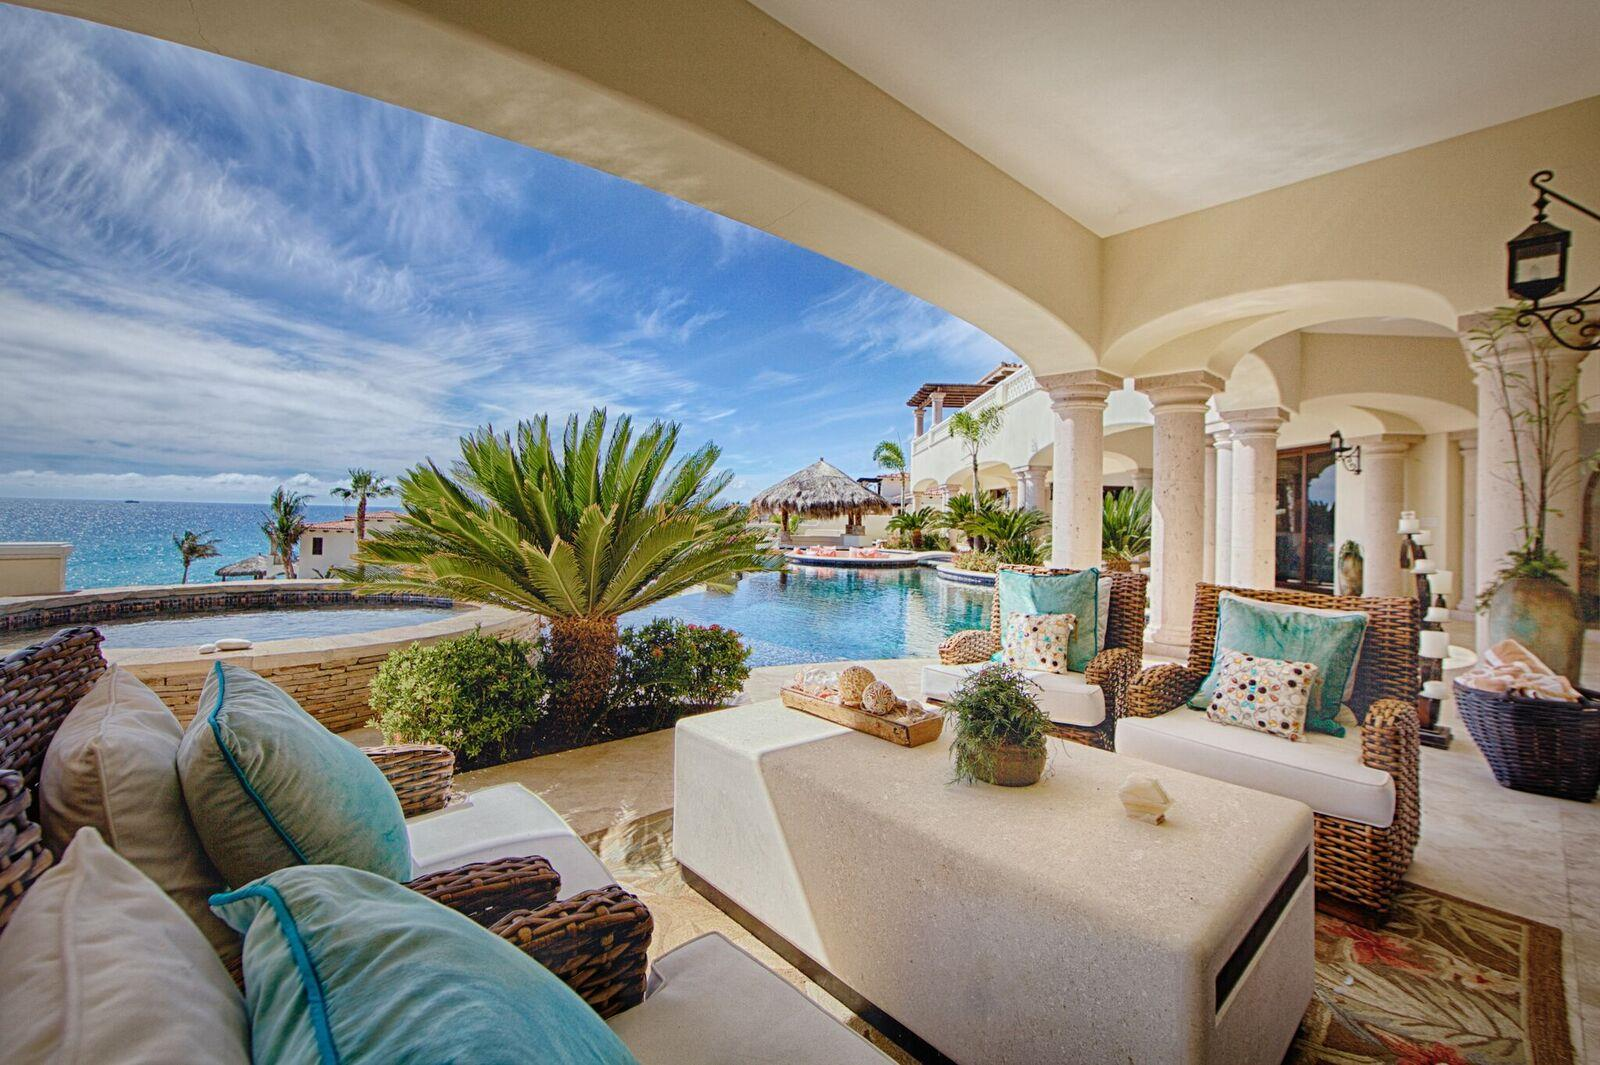 los cabos real estate, cabo real estate, cabo homes